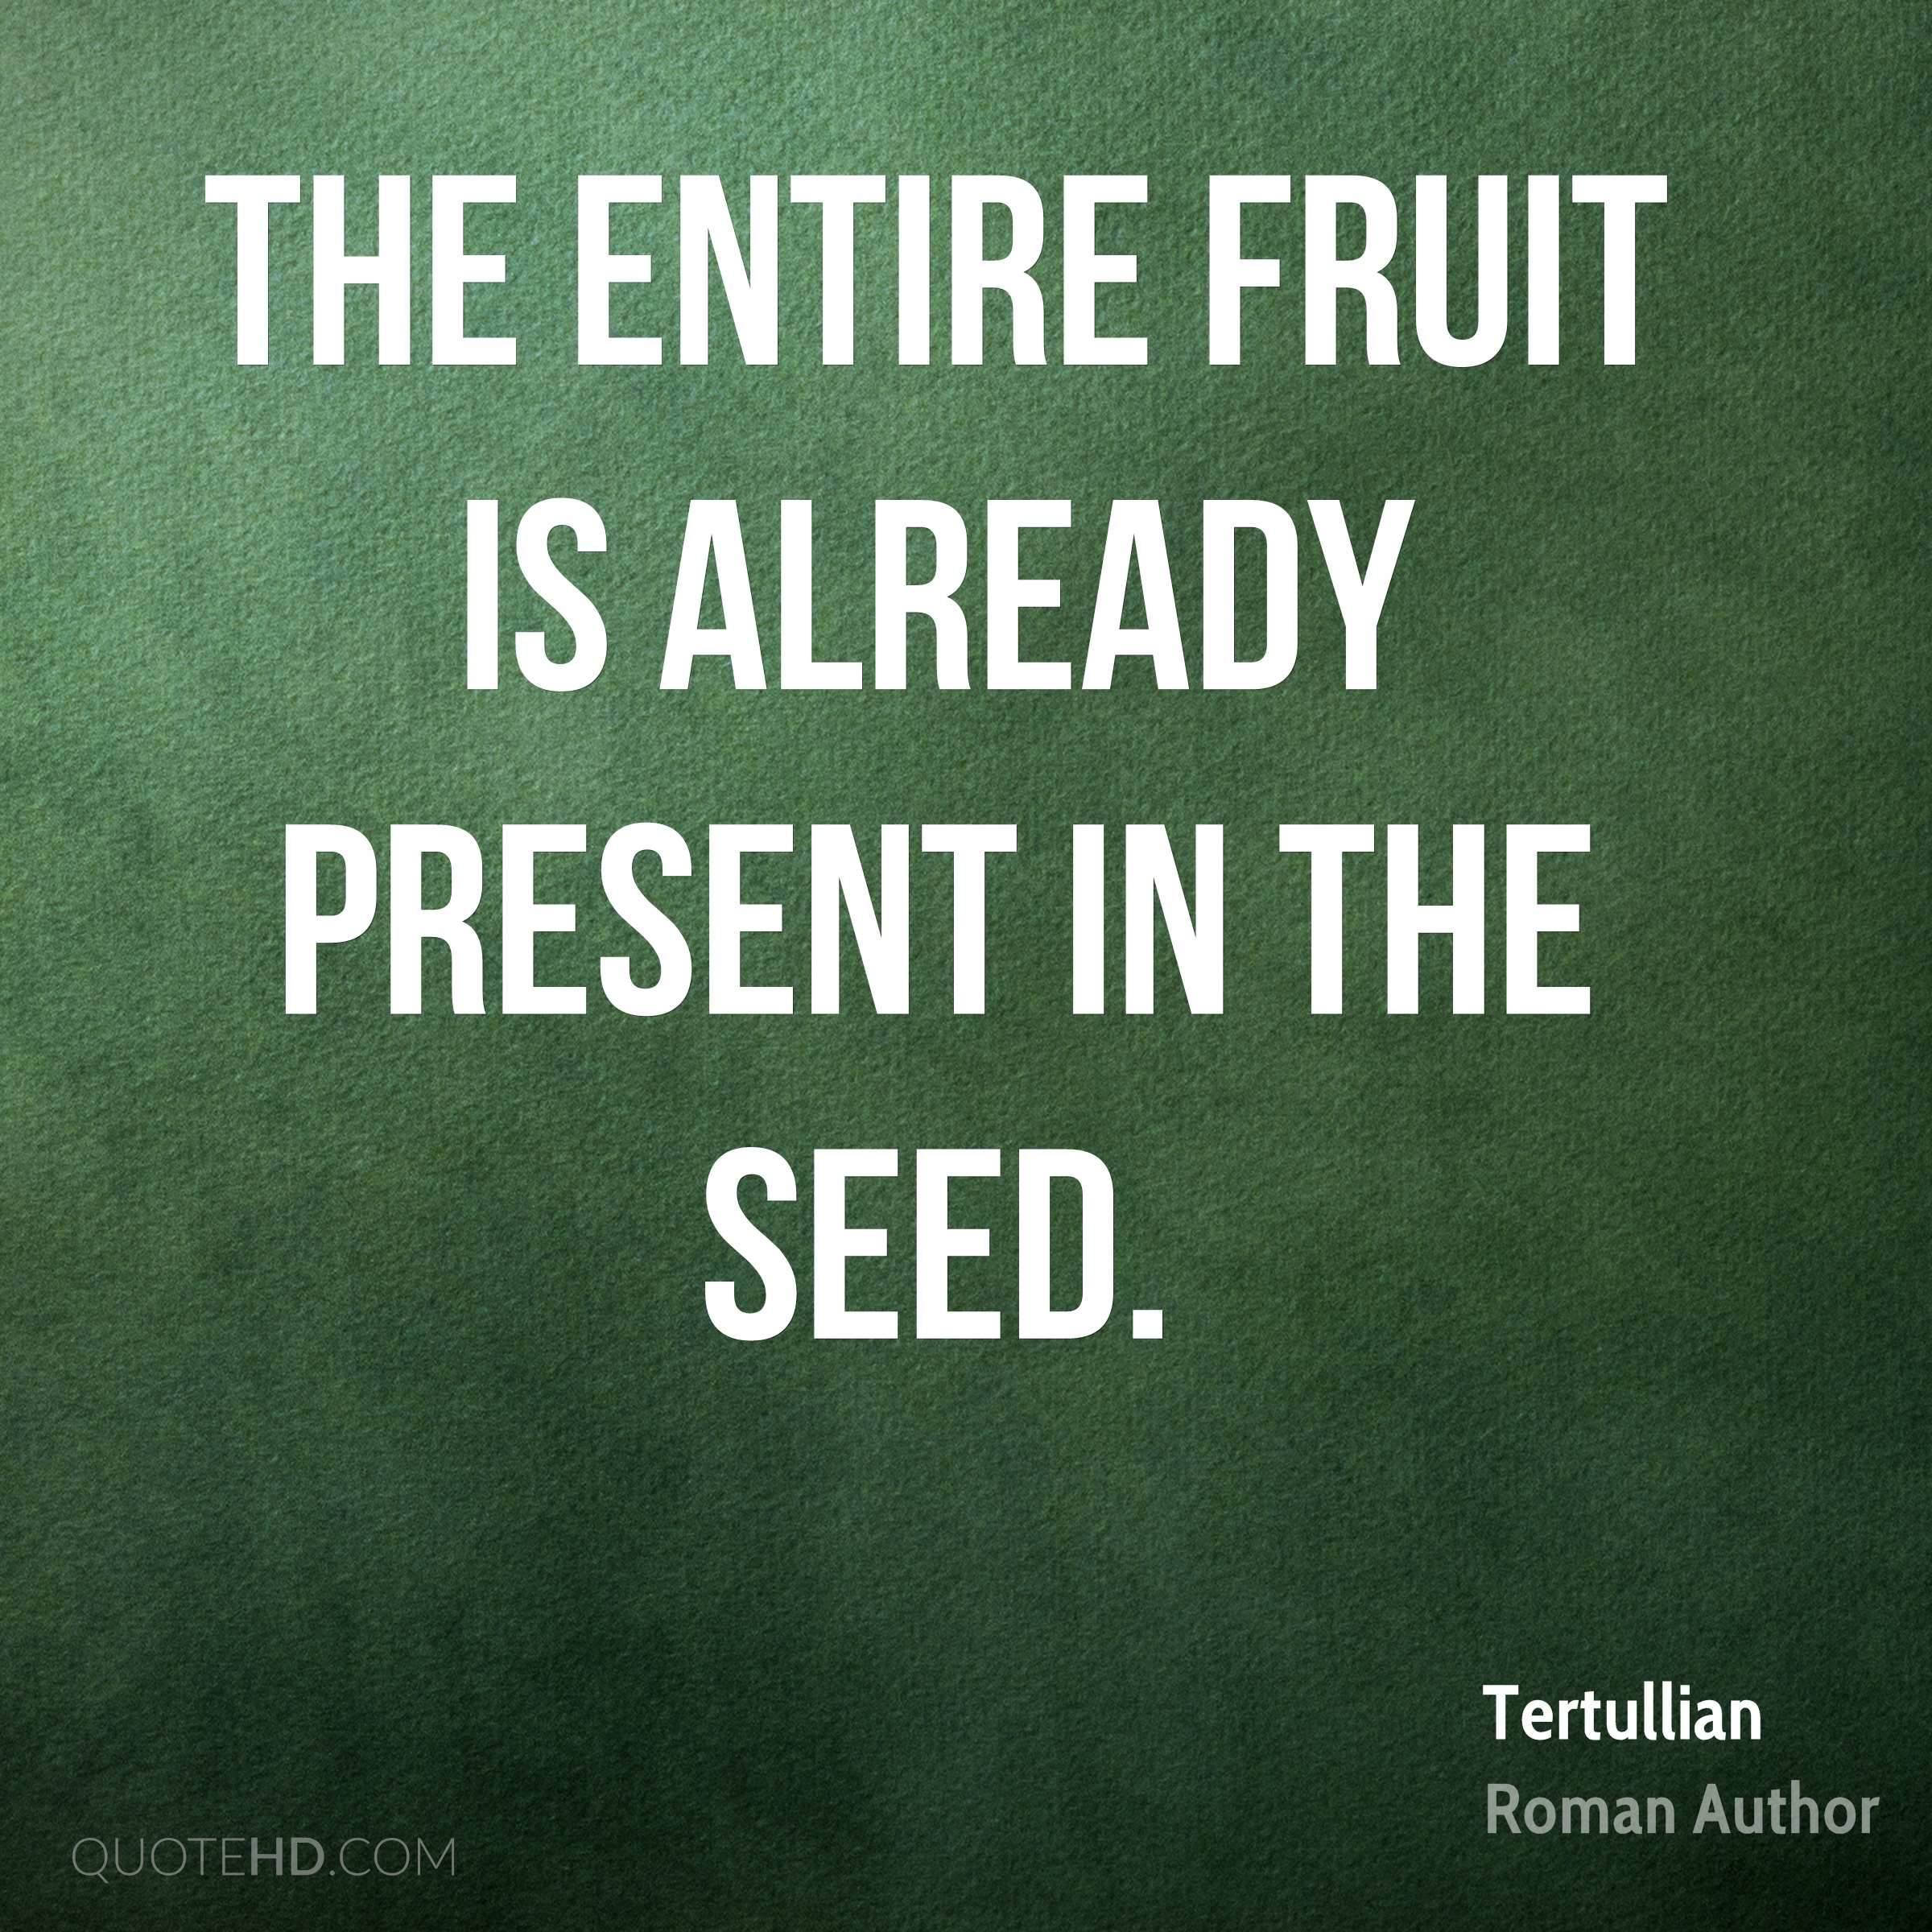 The entire fruit is already present in the seed.